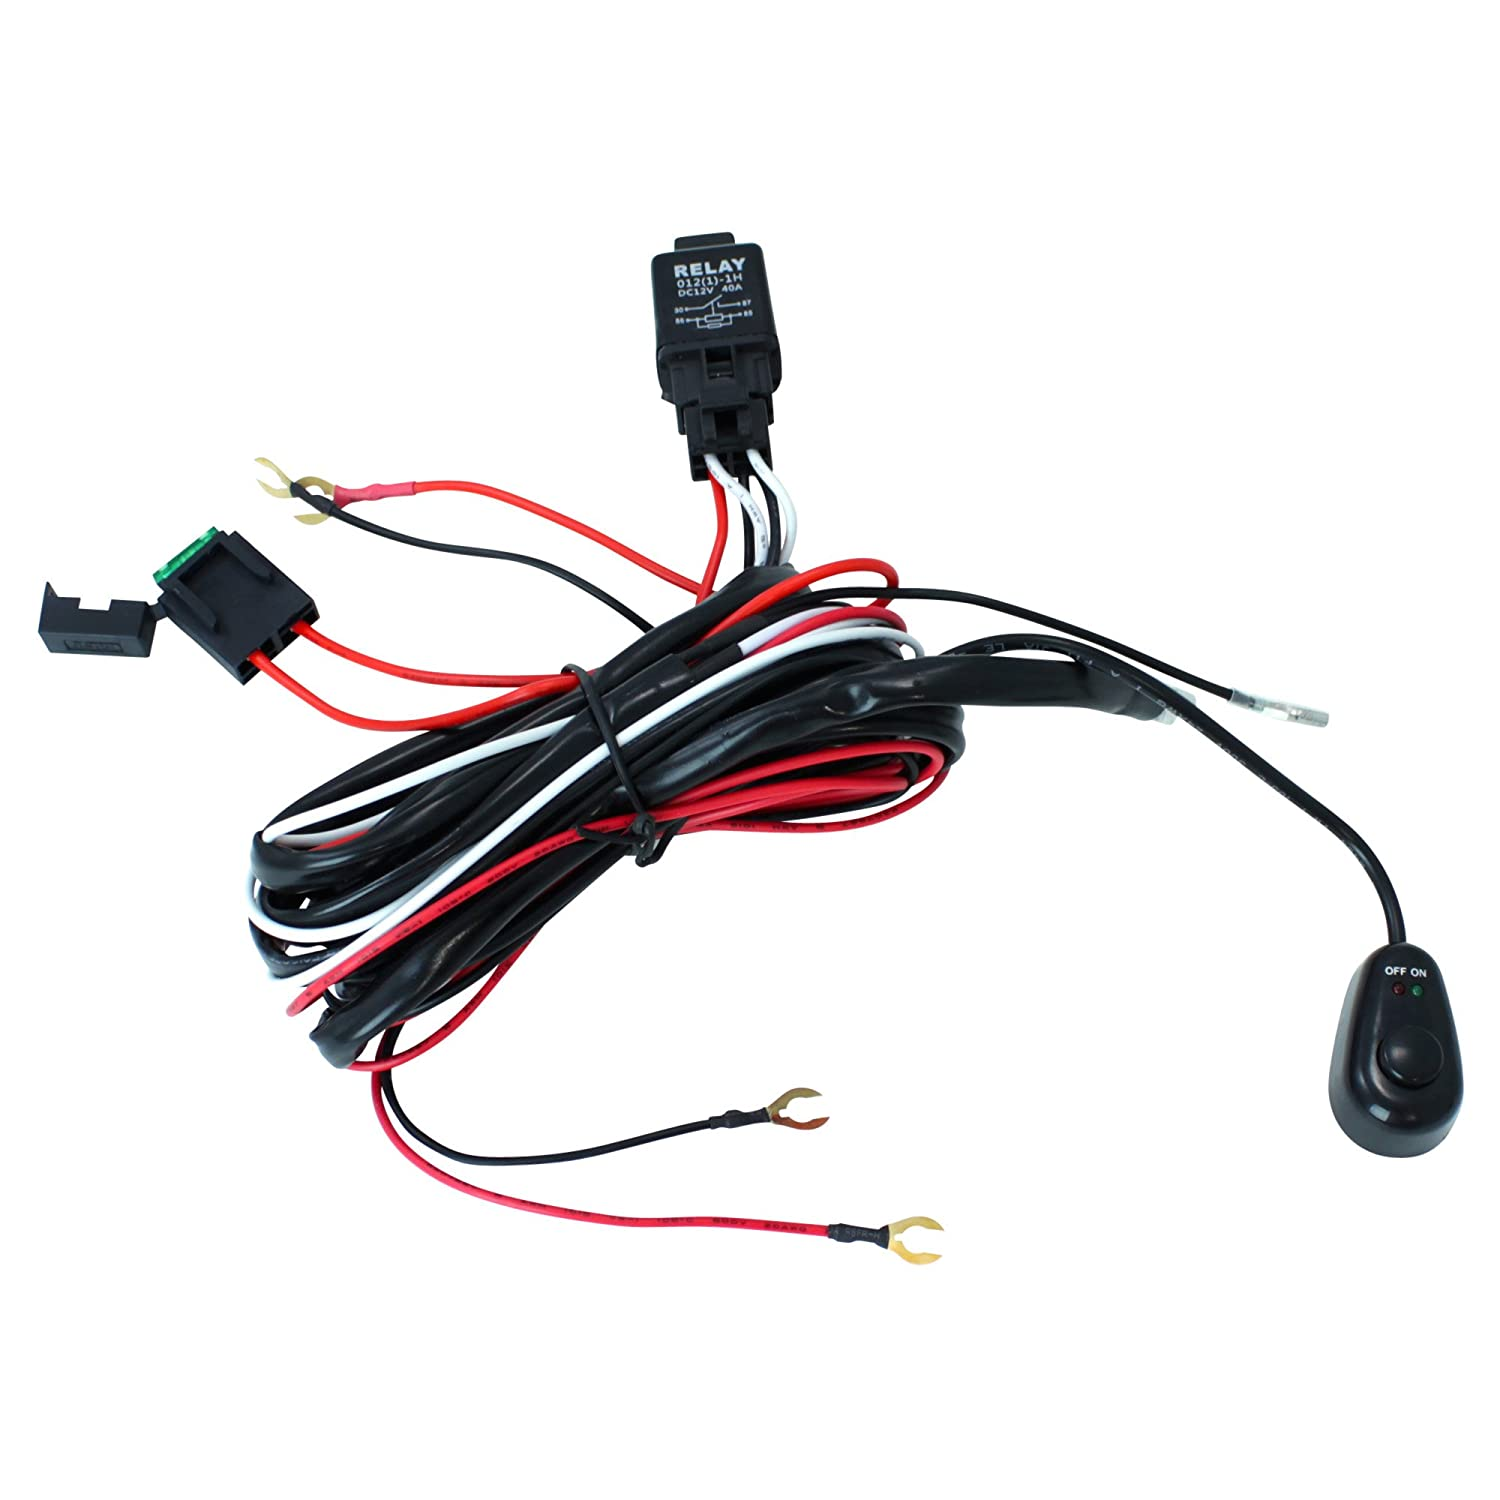 71ONjFALDCL._SL1500_ amazon com dt moto™ off road atv jeep led light bar wiring mictuning wiring harness installation at bayanpartner.co